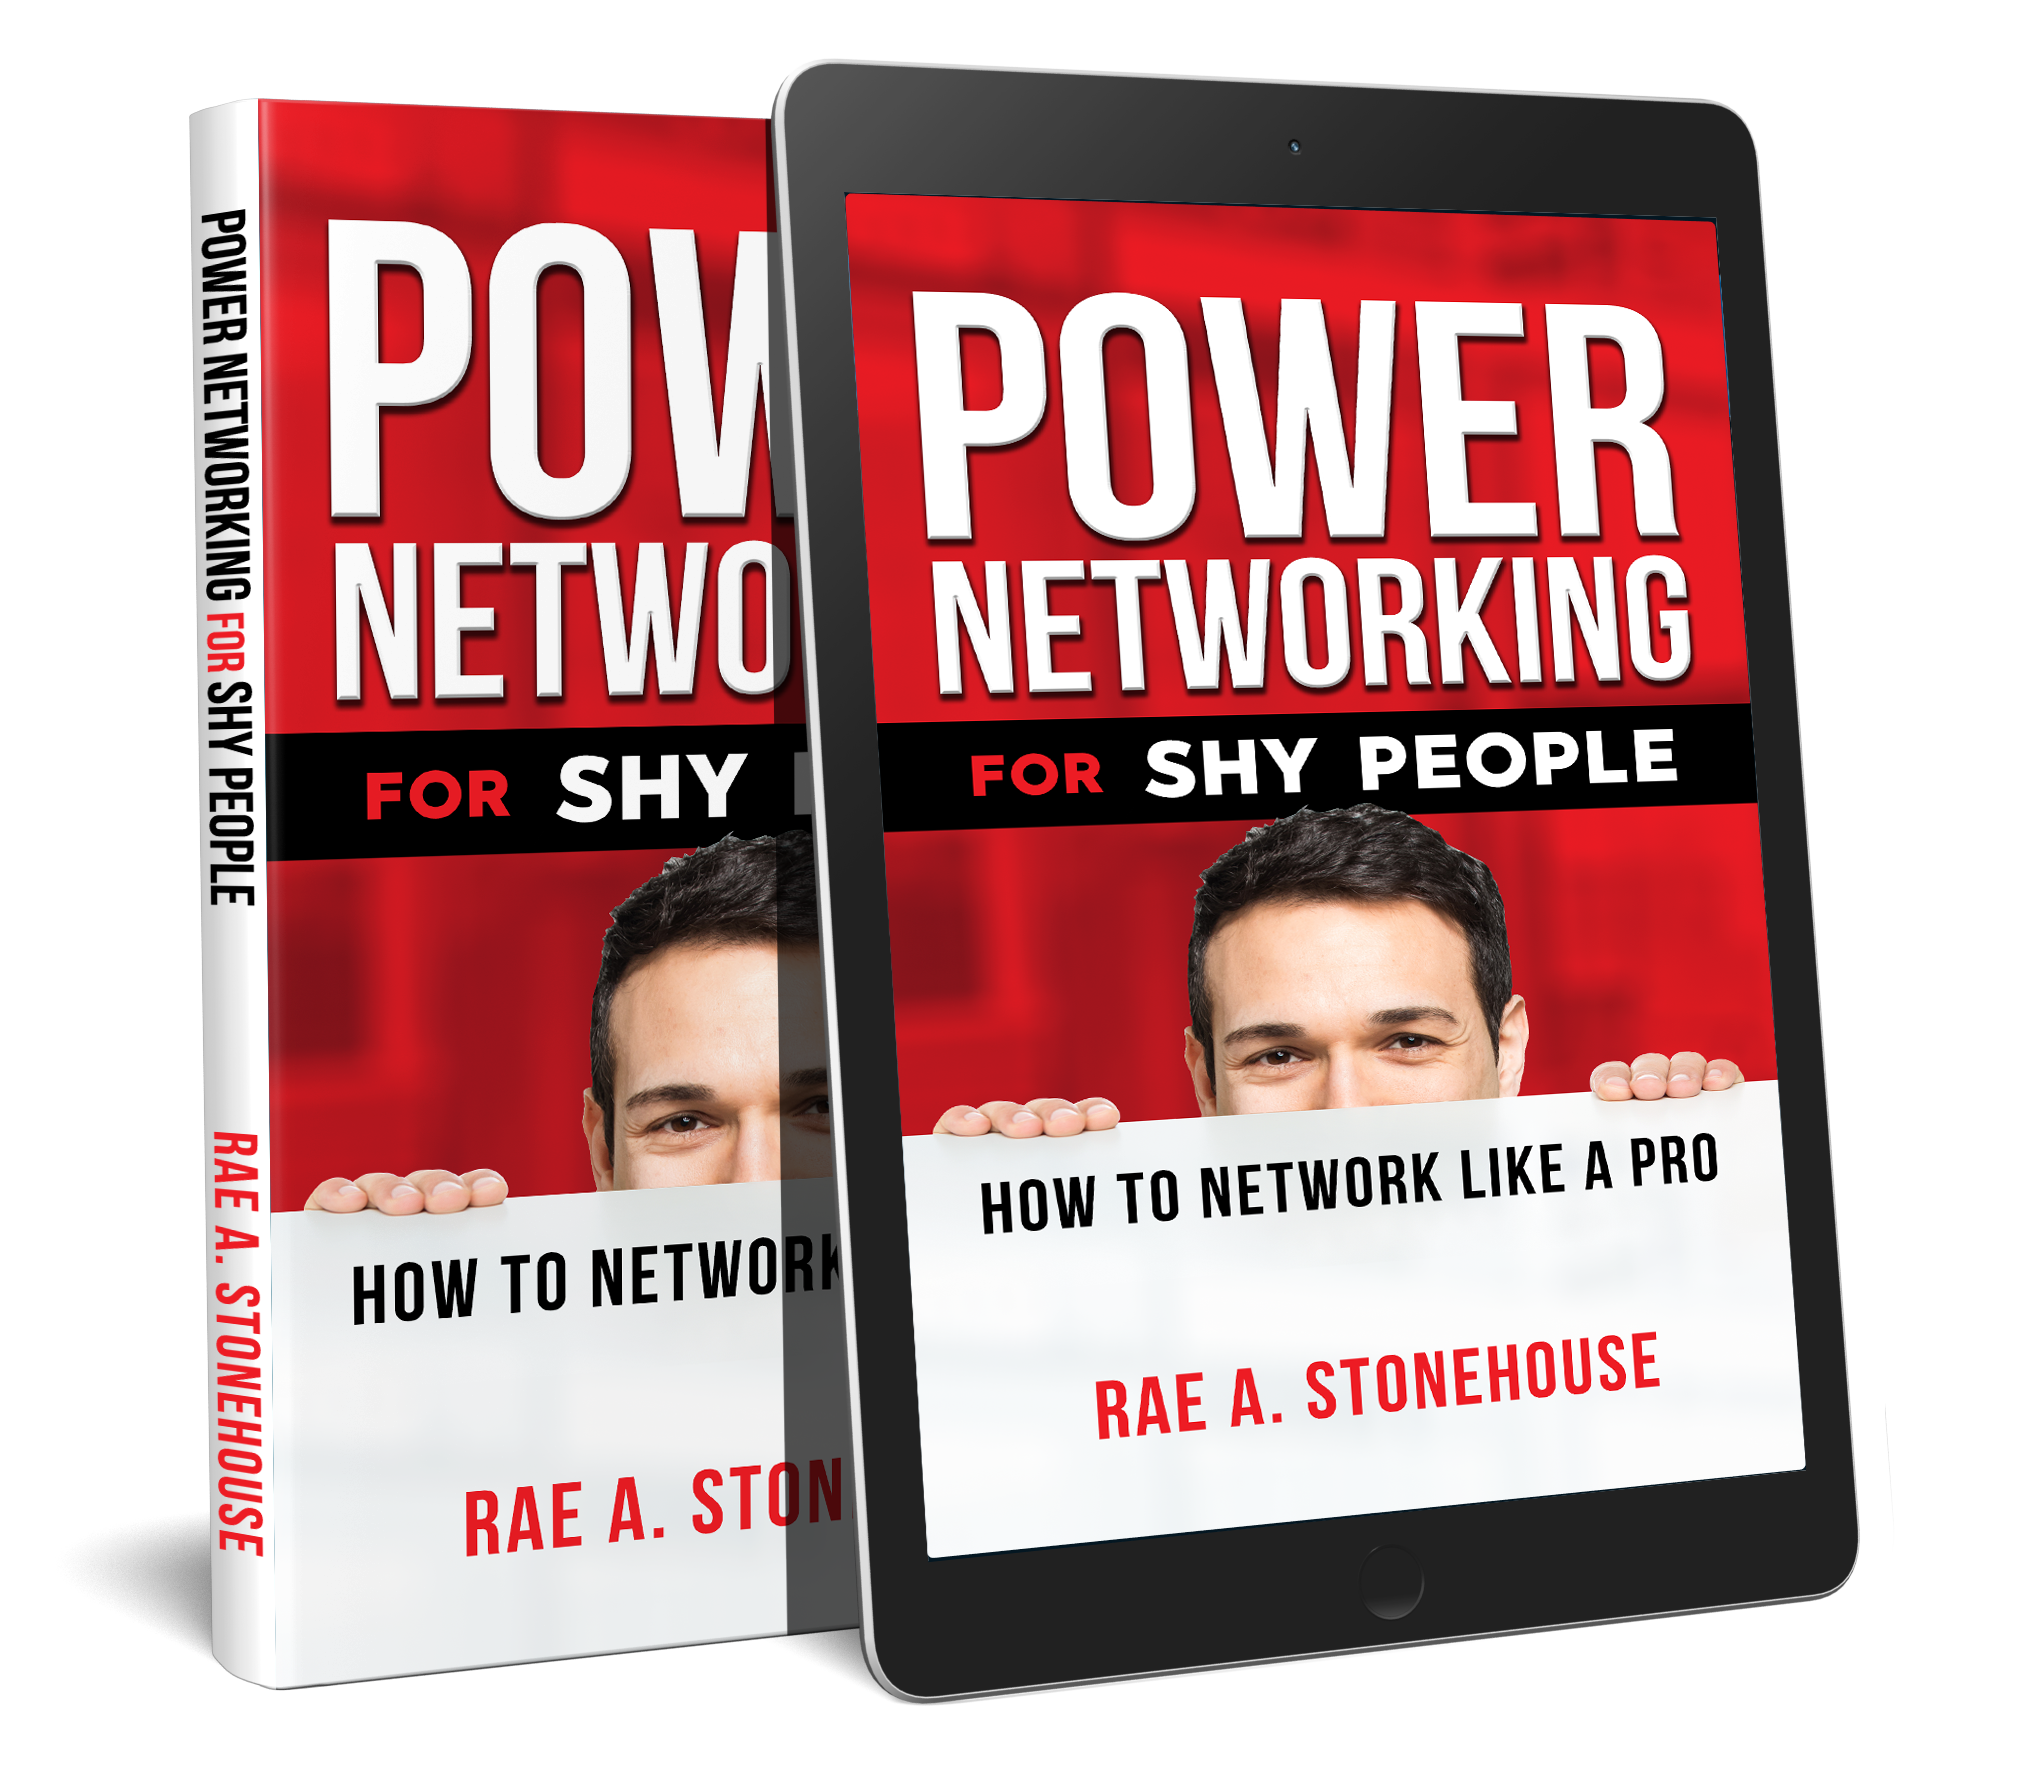 Power Networking For Shy People: How To Network Like a Pro